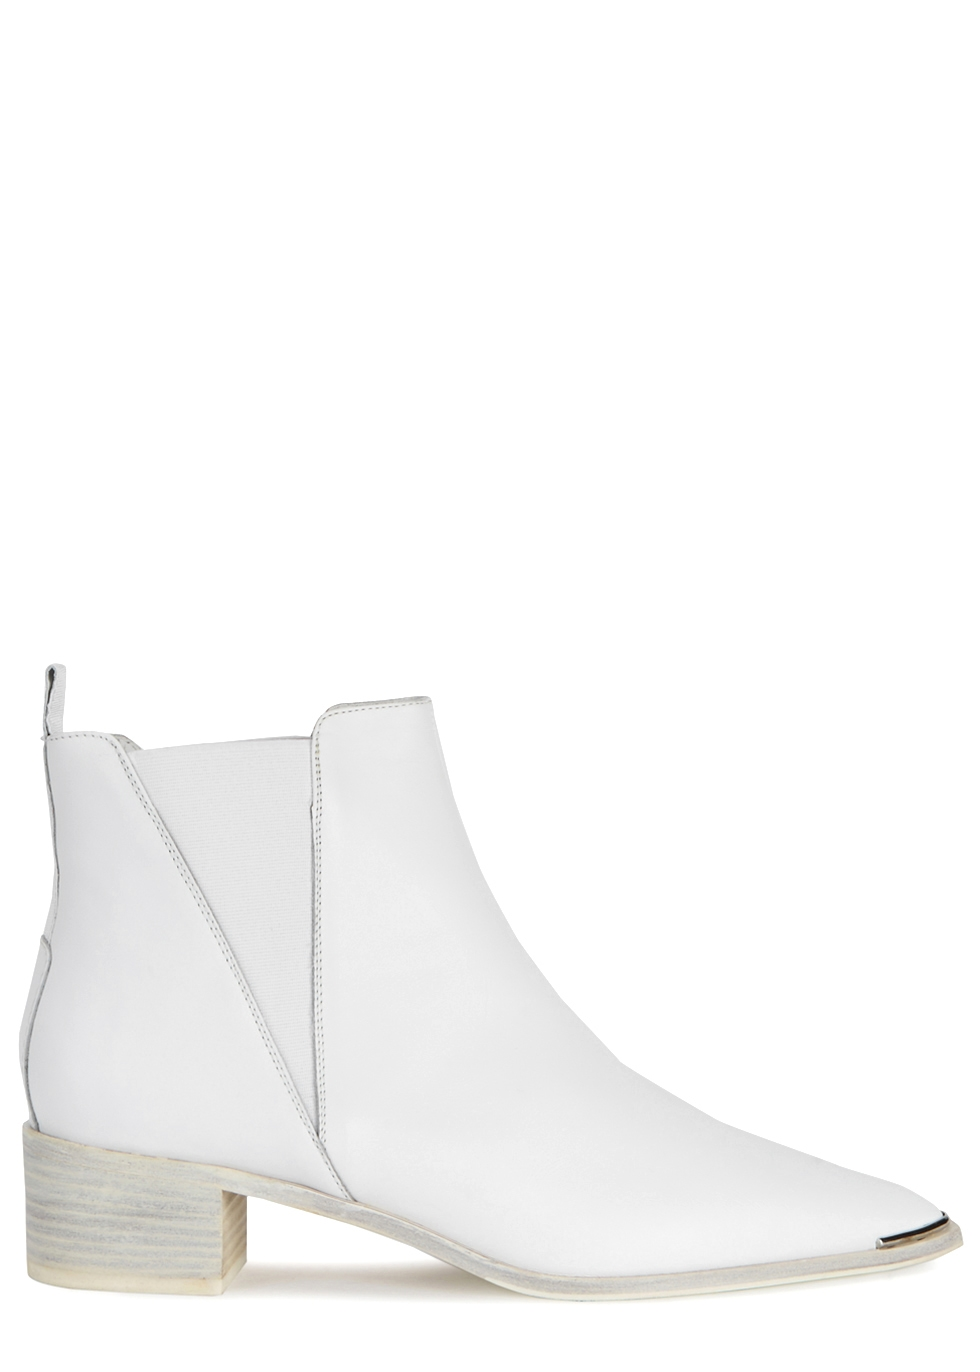 Jensen 40 white leather ankle boots - Acne Studios